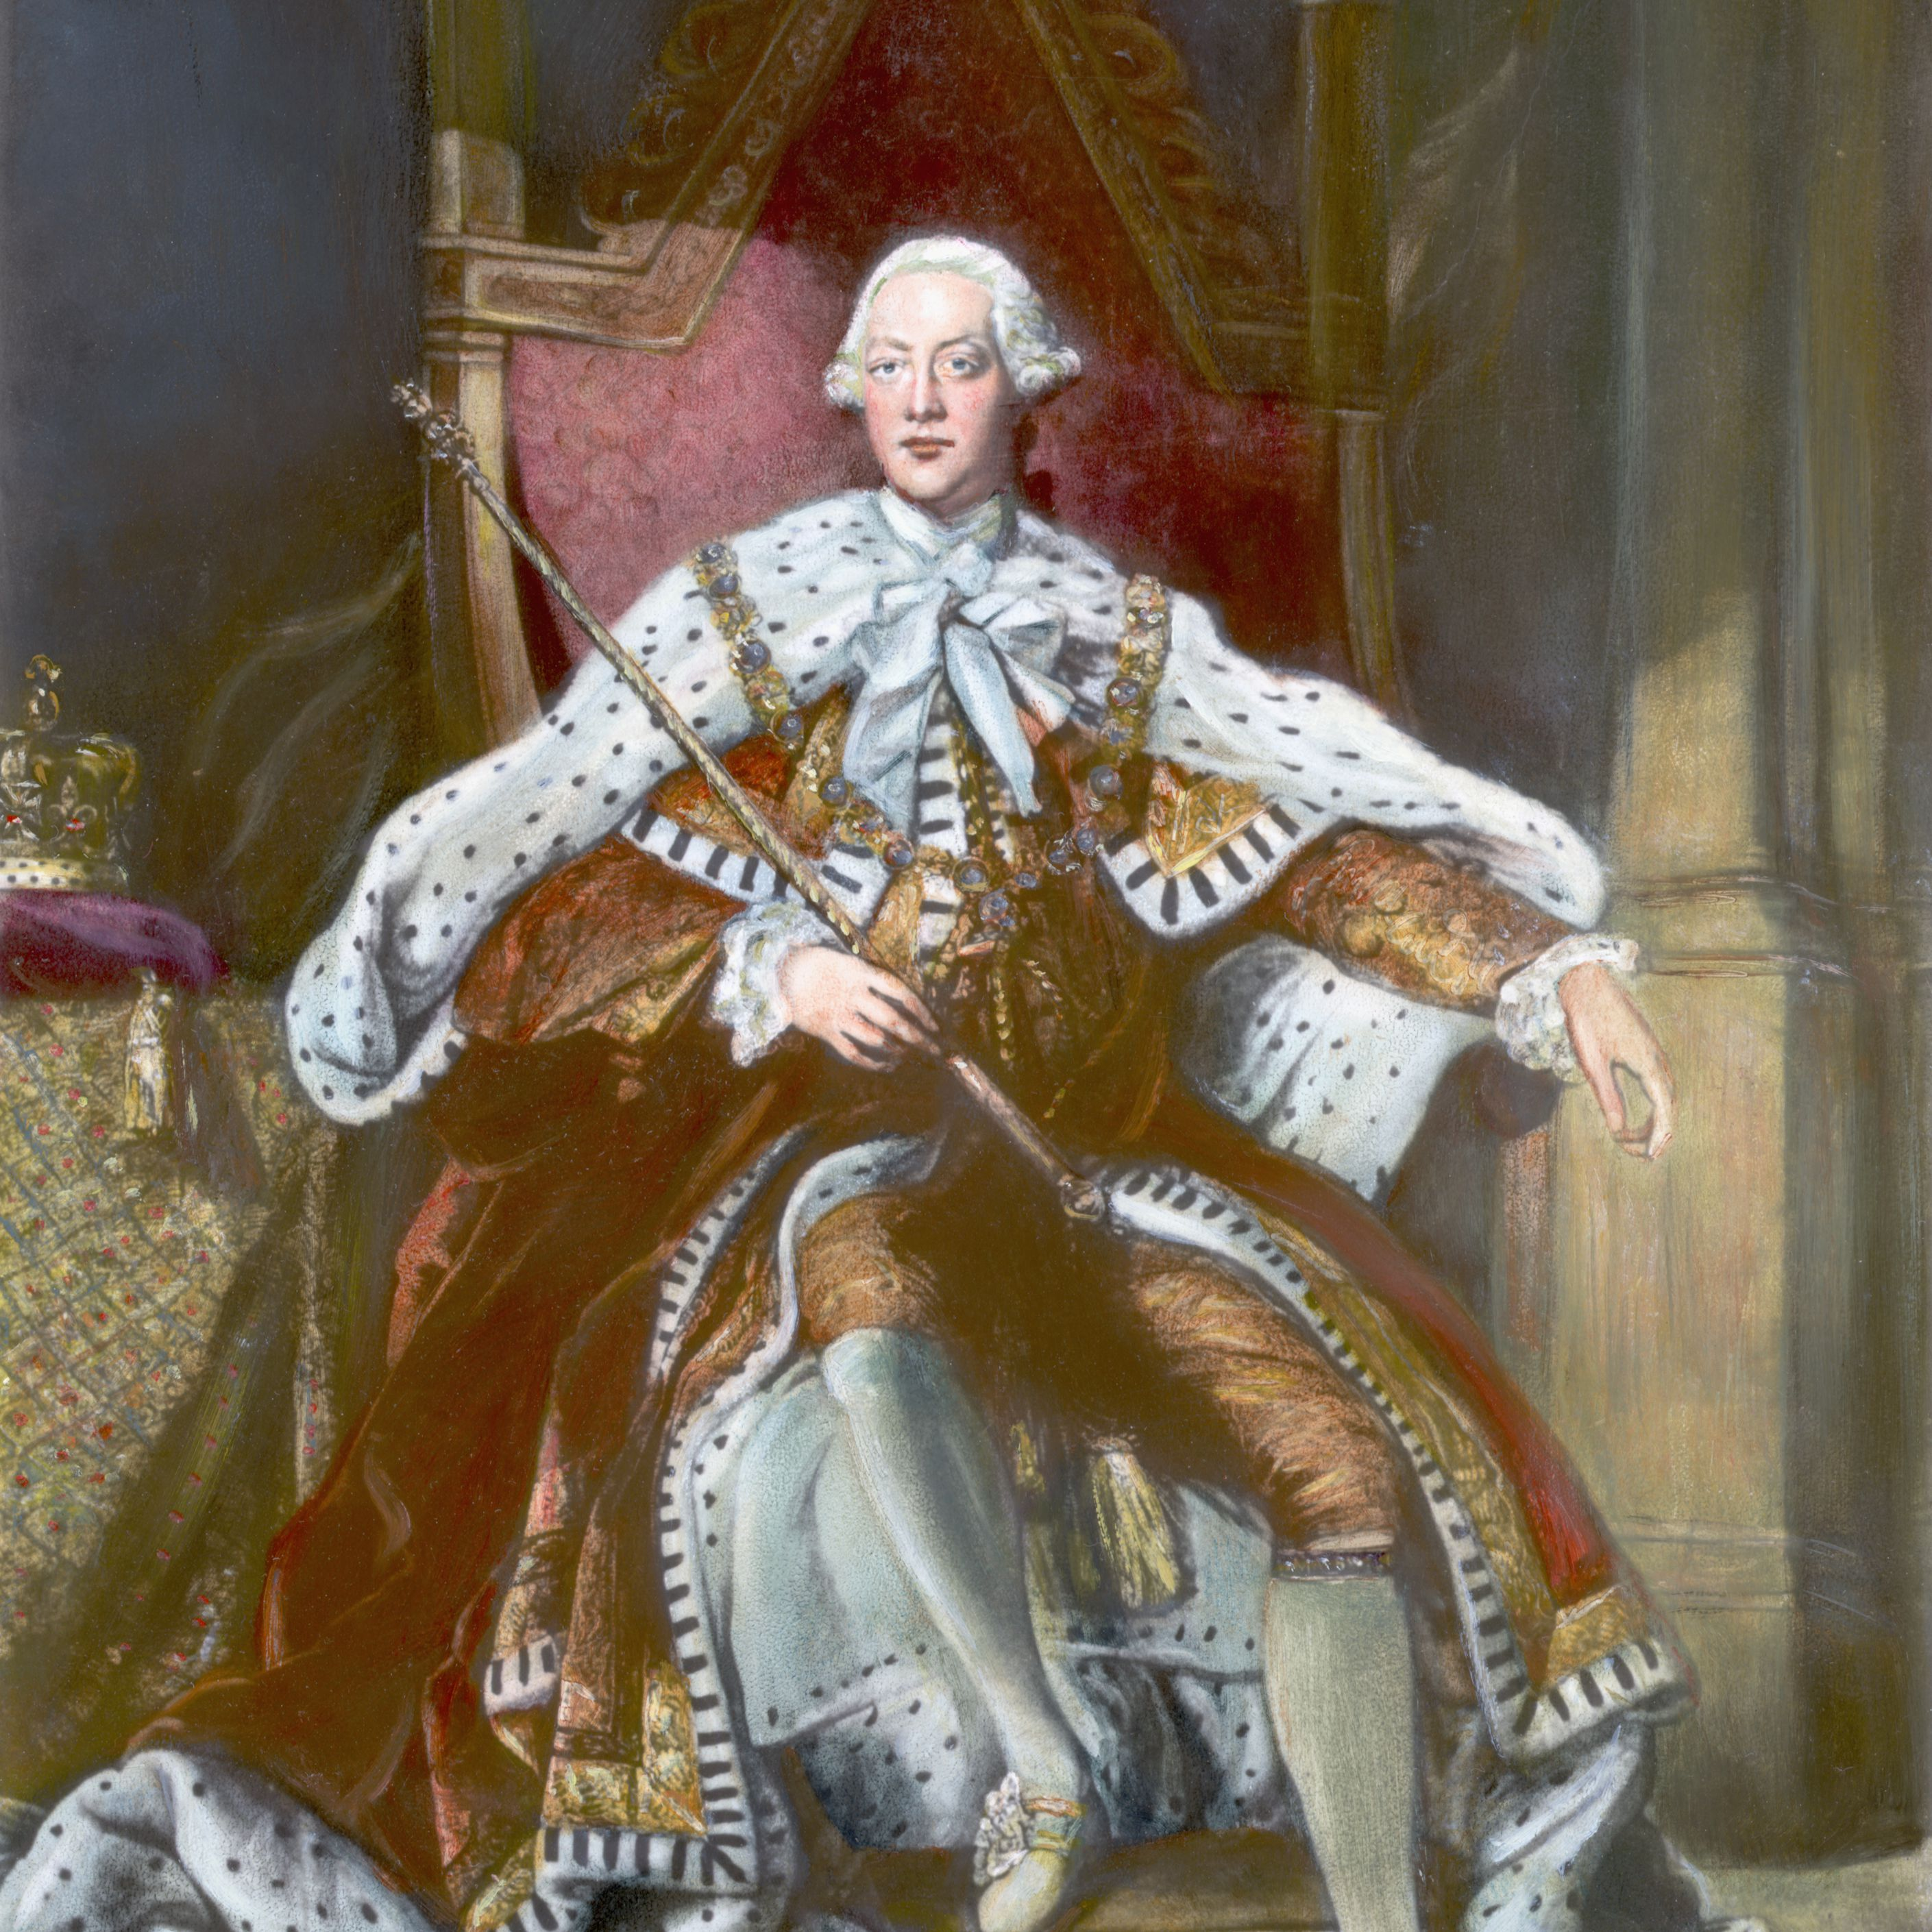 Portrait of George III, King of Great Britain and Ireland Enthroned